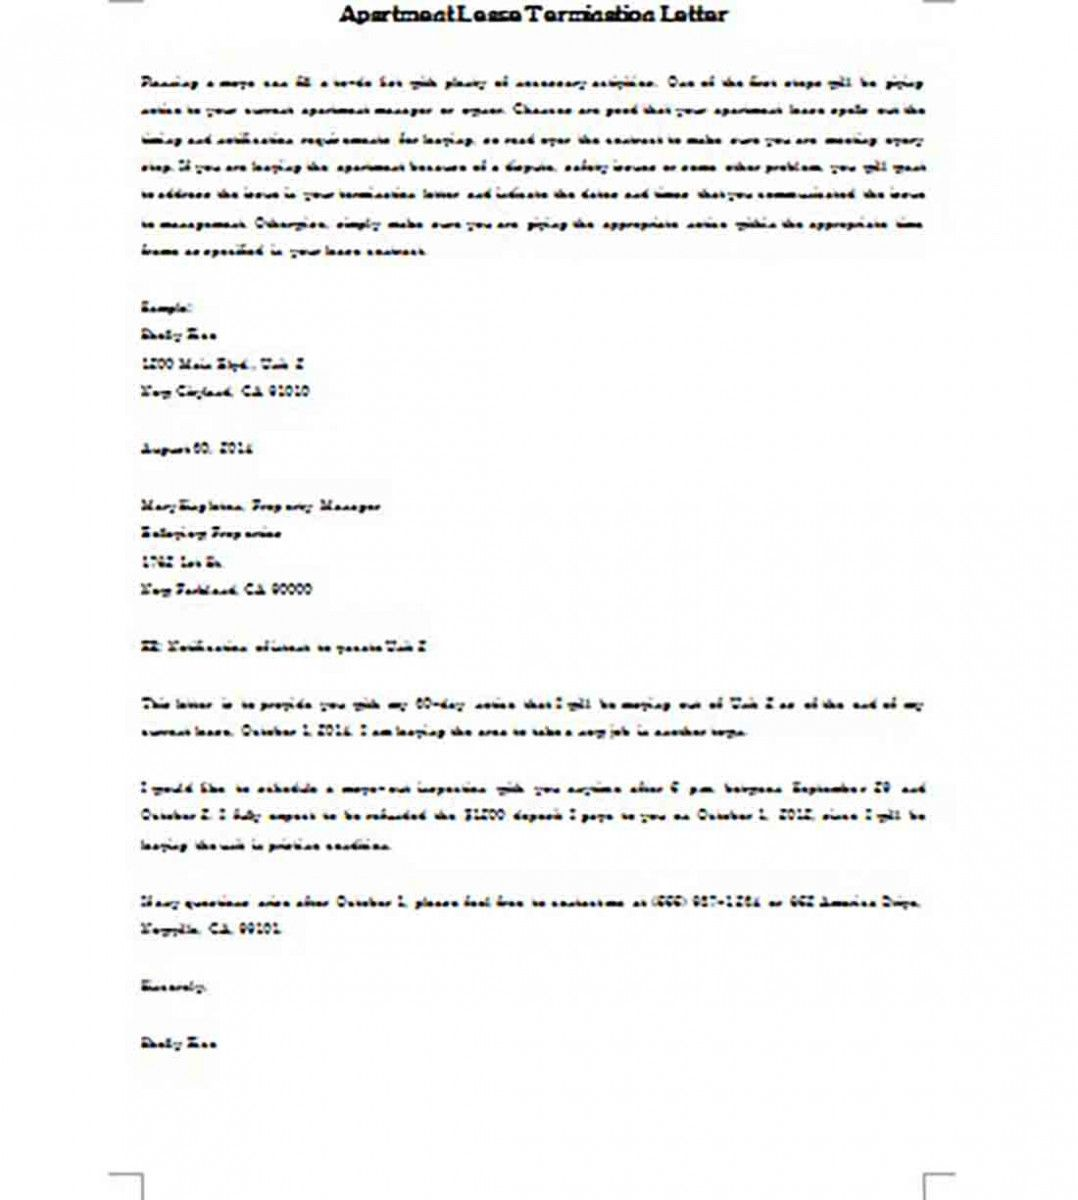 Sample Apartment Lease Termination Letter from i.pinimg.com